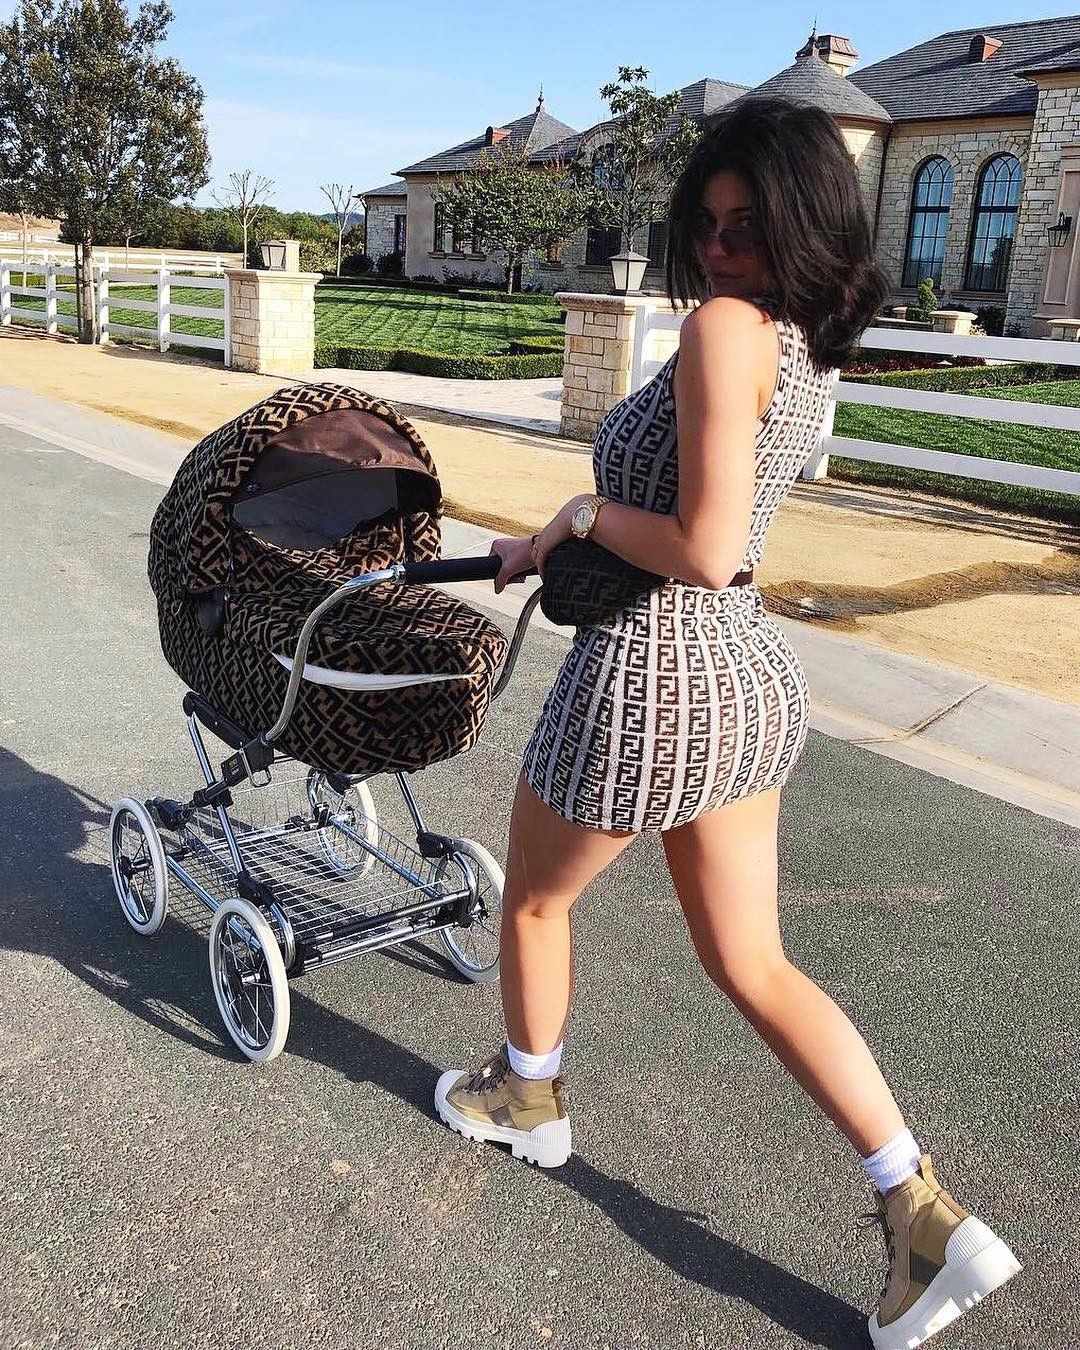 Kylie and Stormi Kardashian/Jenner in 2019 Kylie